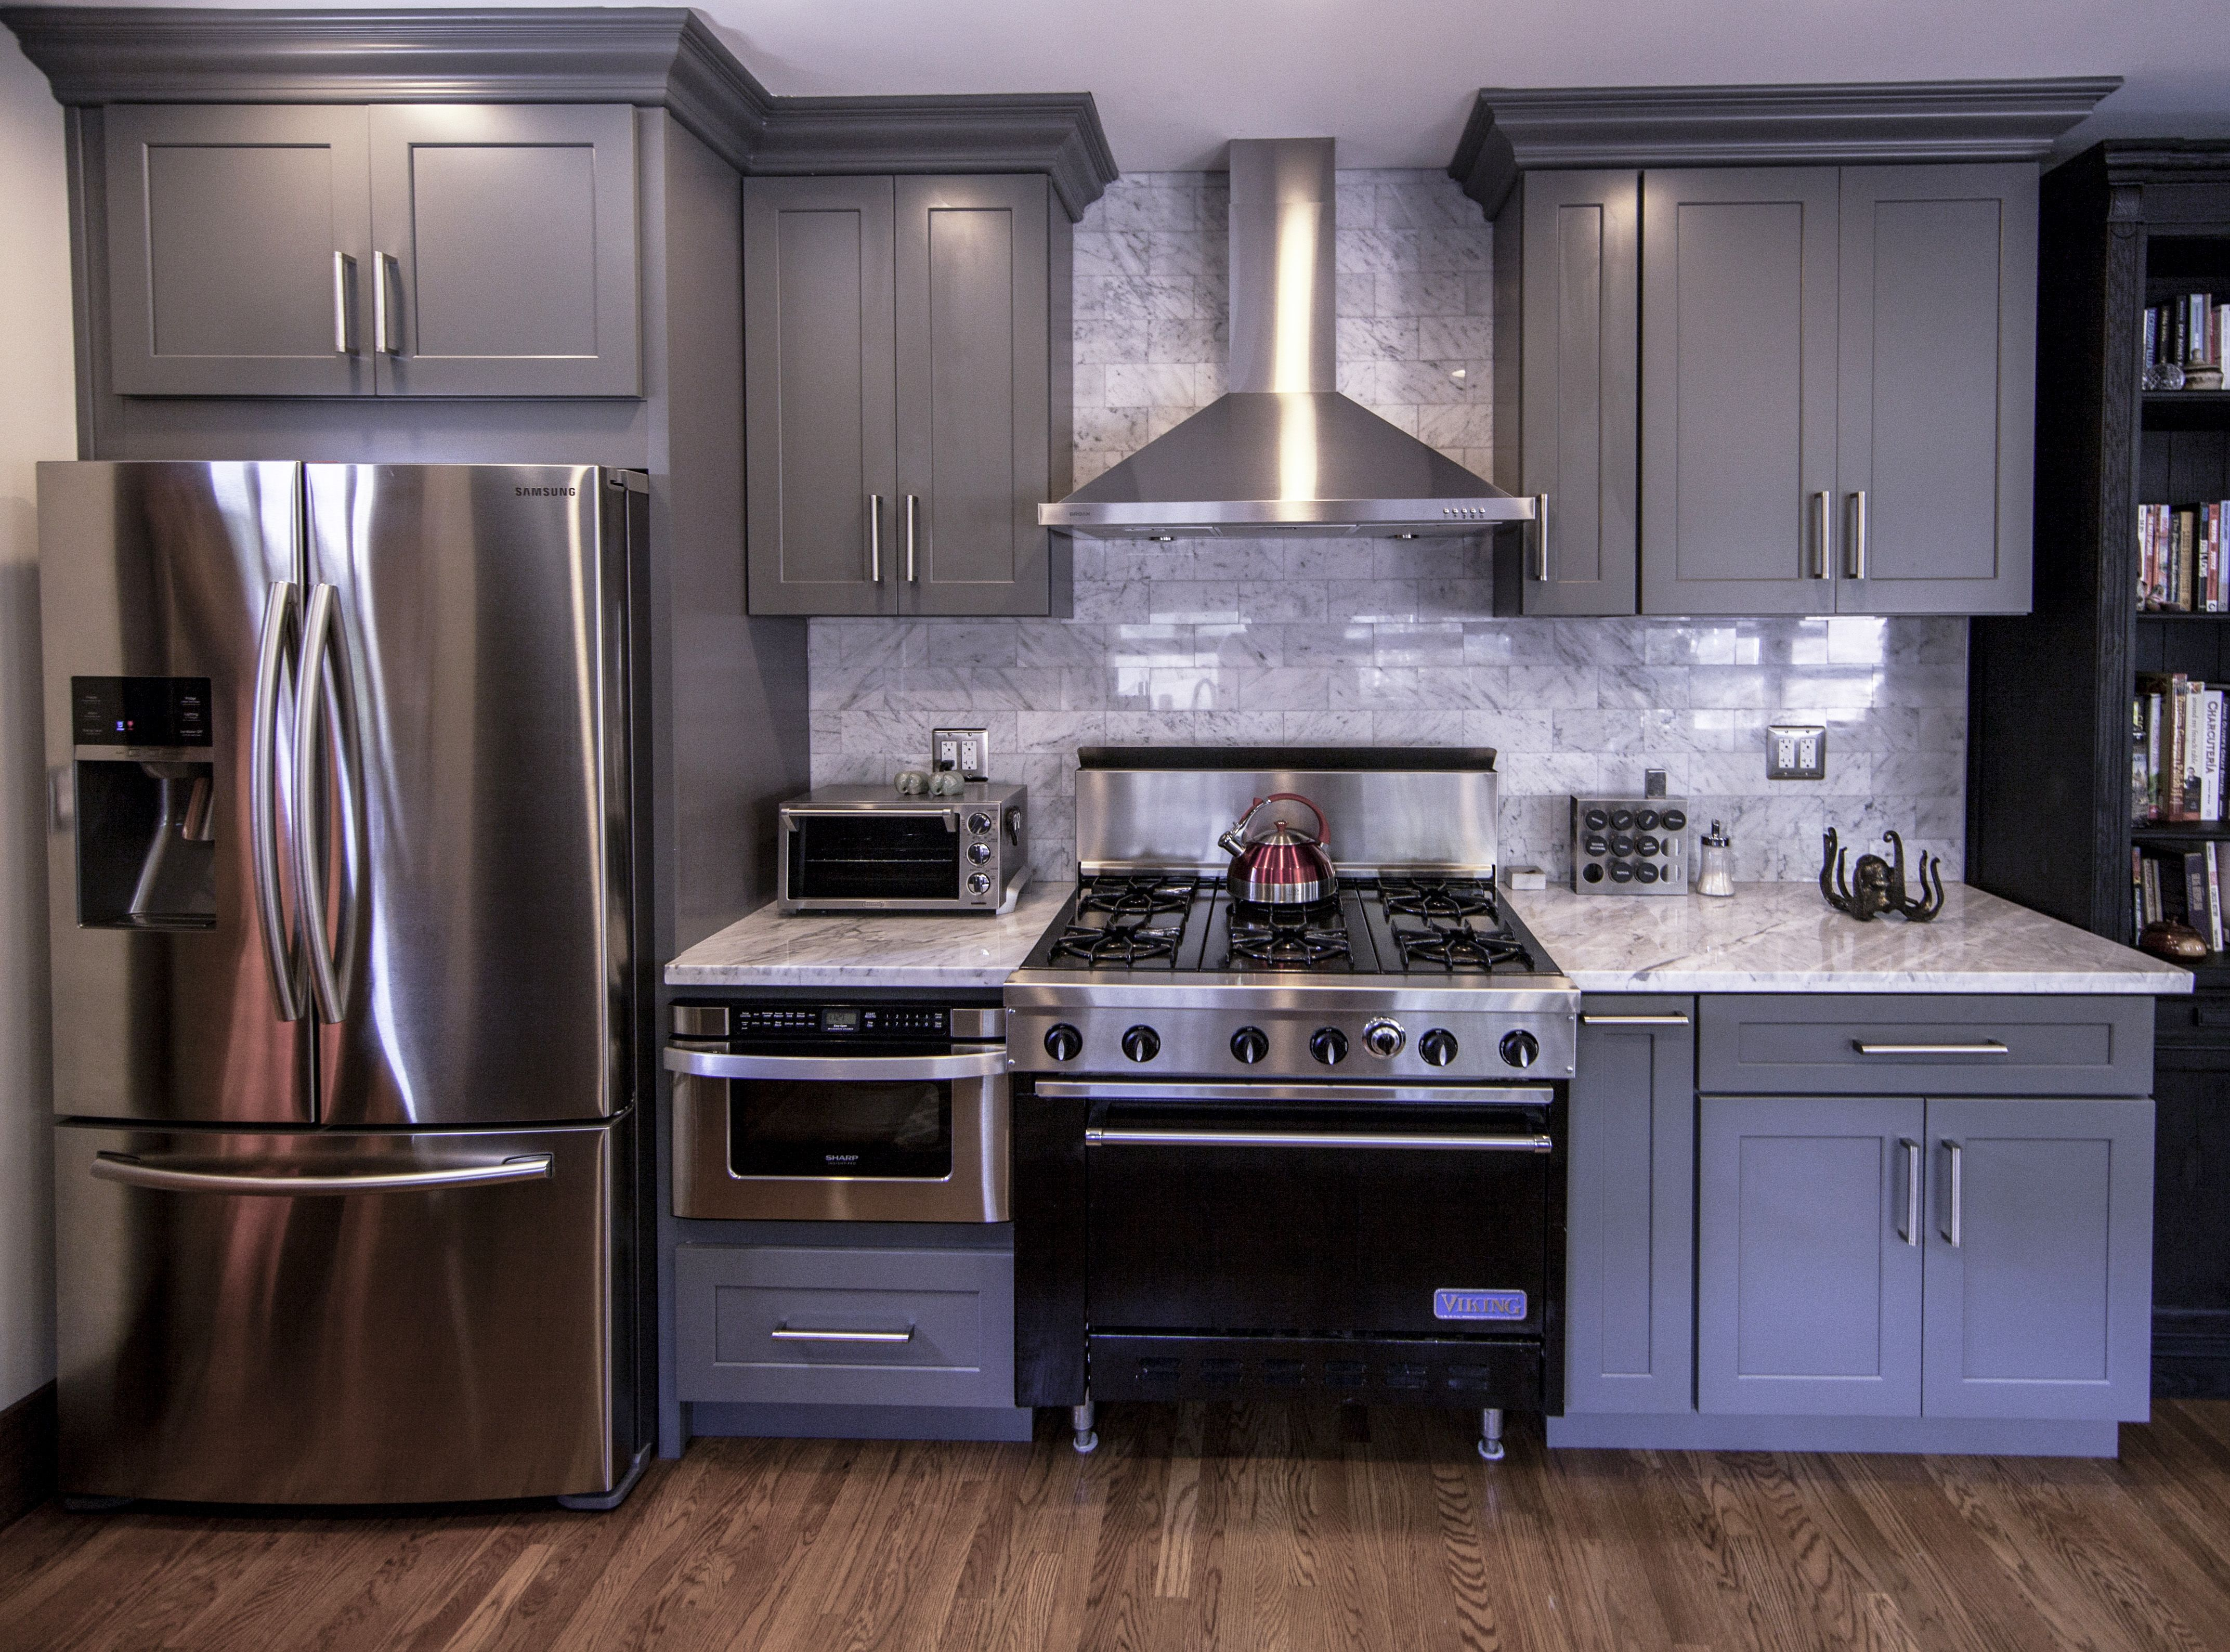 Kitchen Renovation With Stainless Steel Appliances Gray Marble